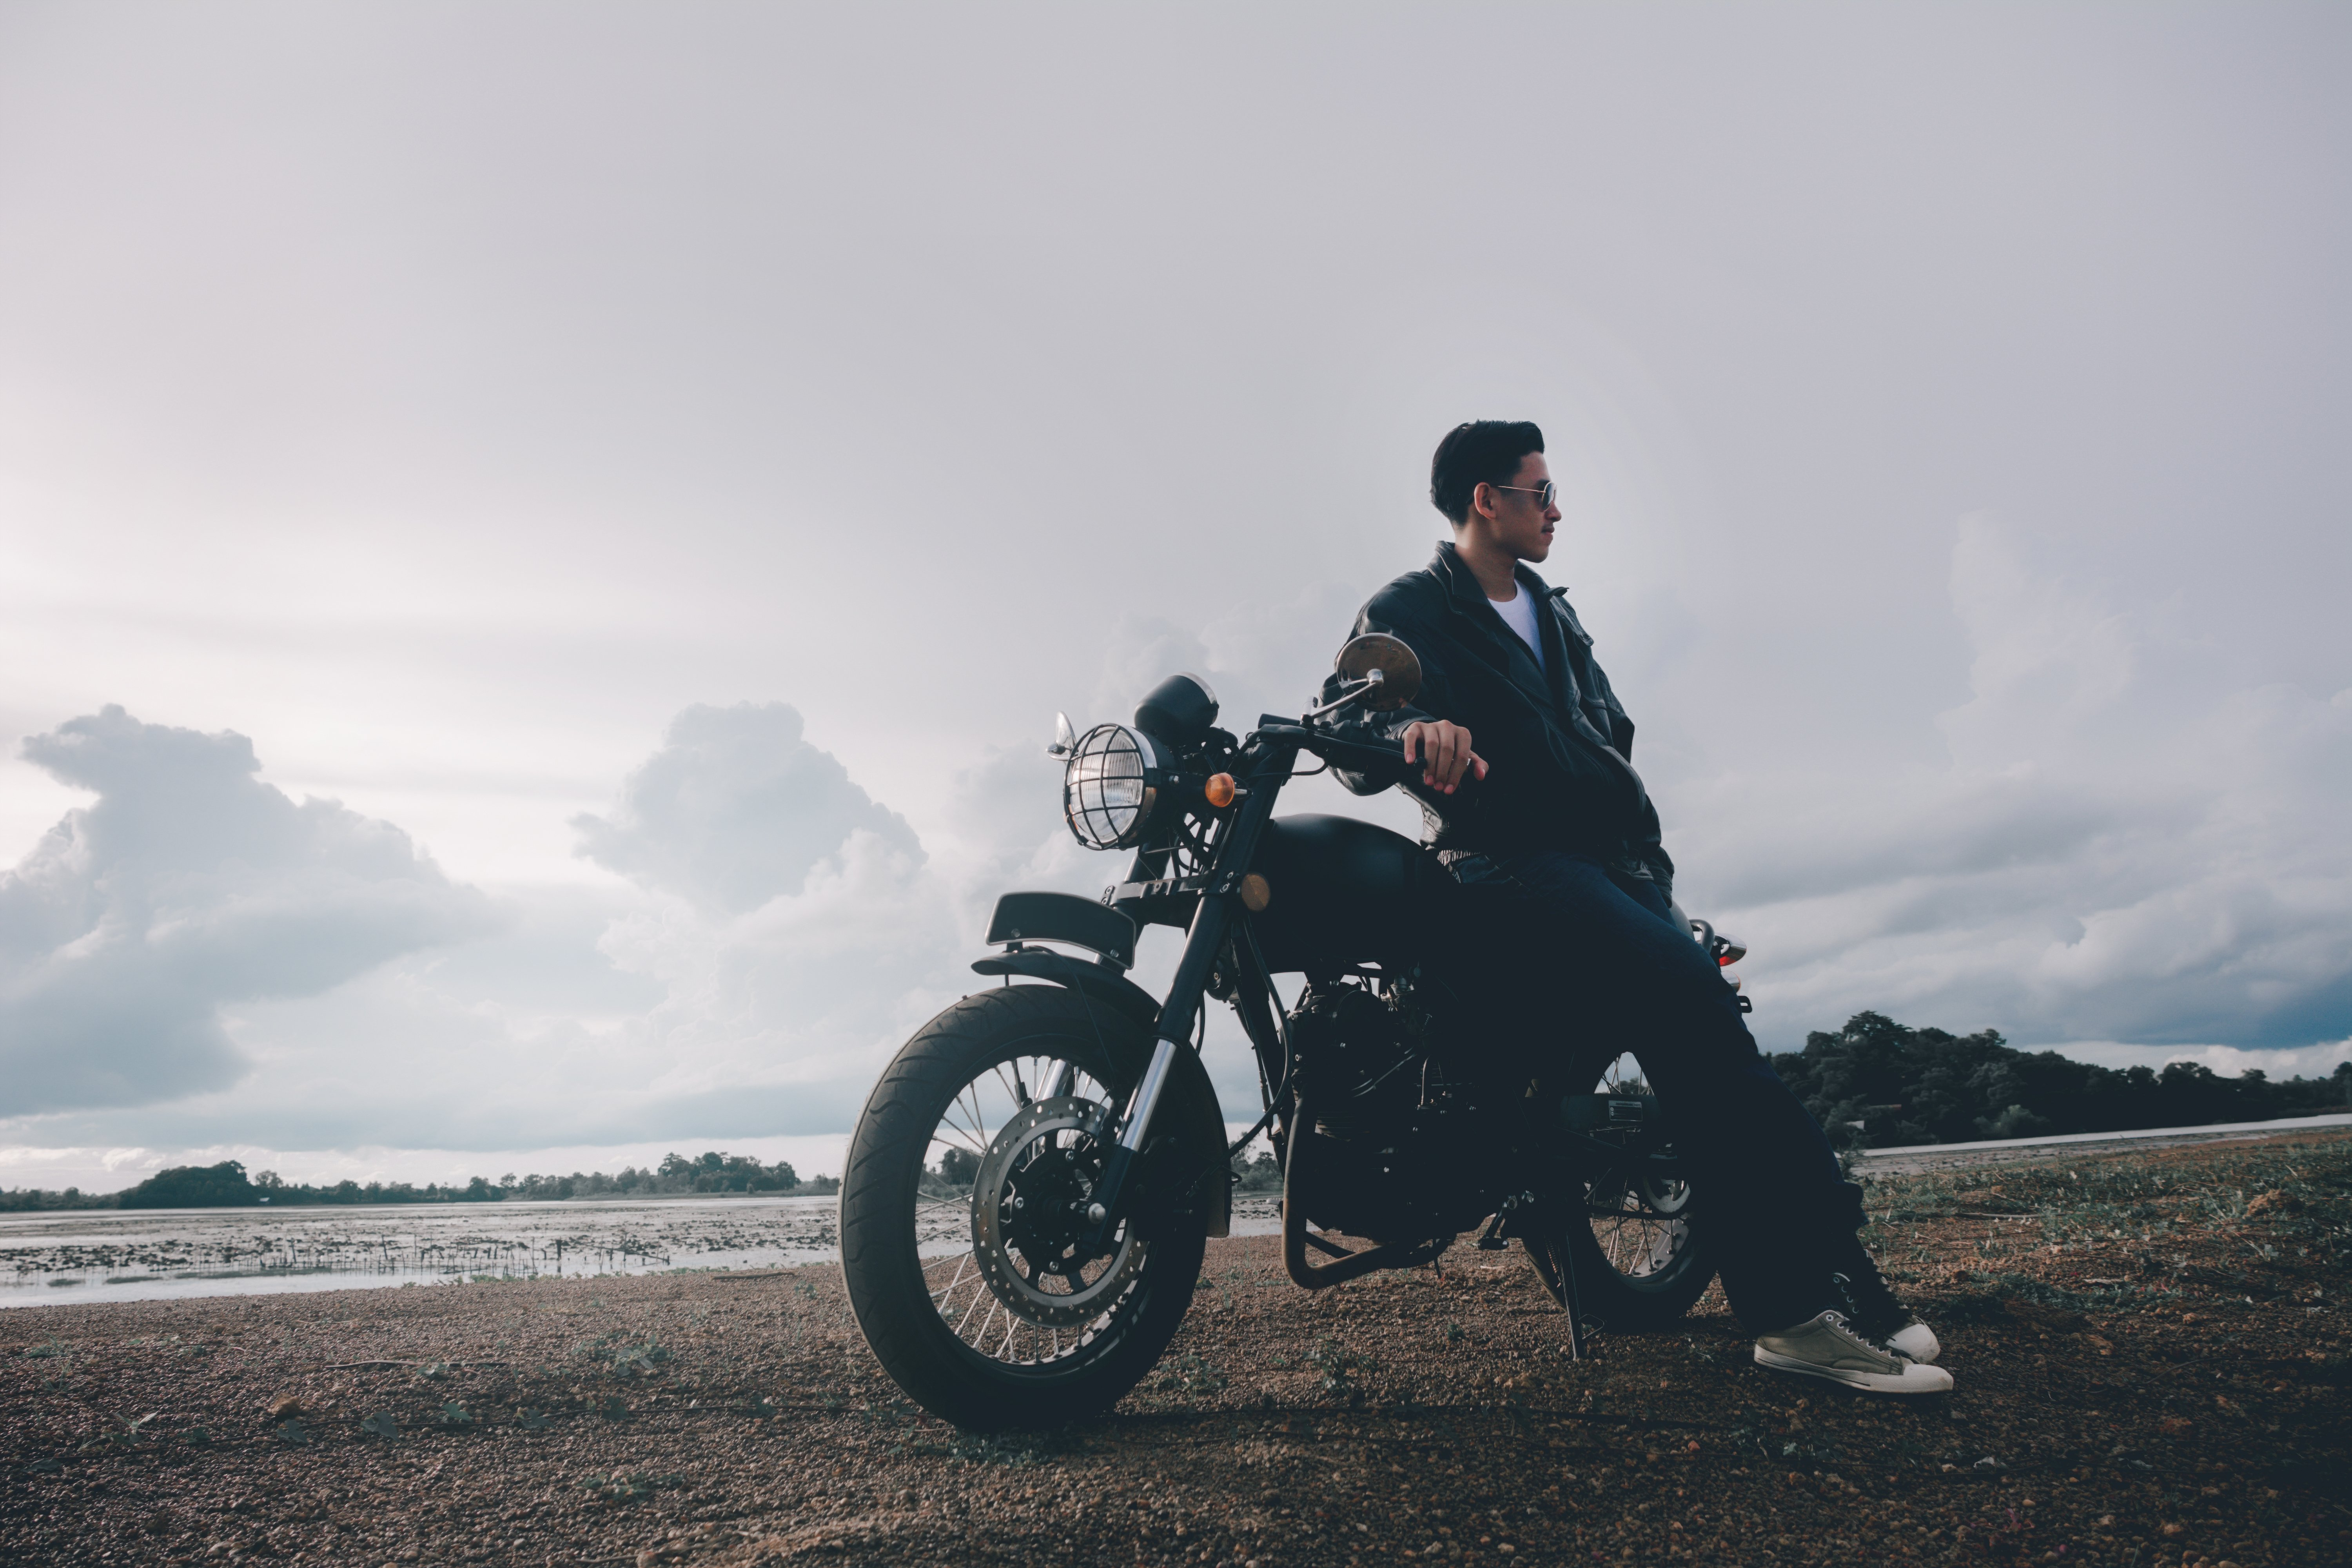 Young man posing with his motorcycle underneath the sunset. |Source: Shutterstock